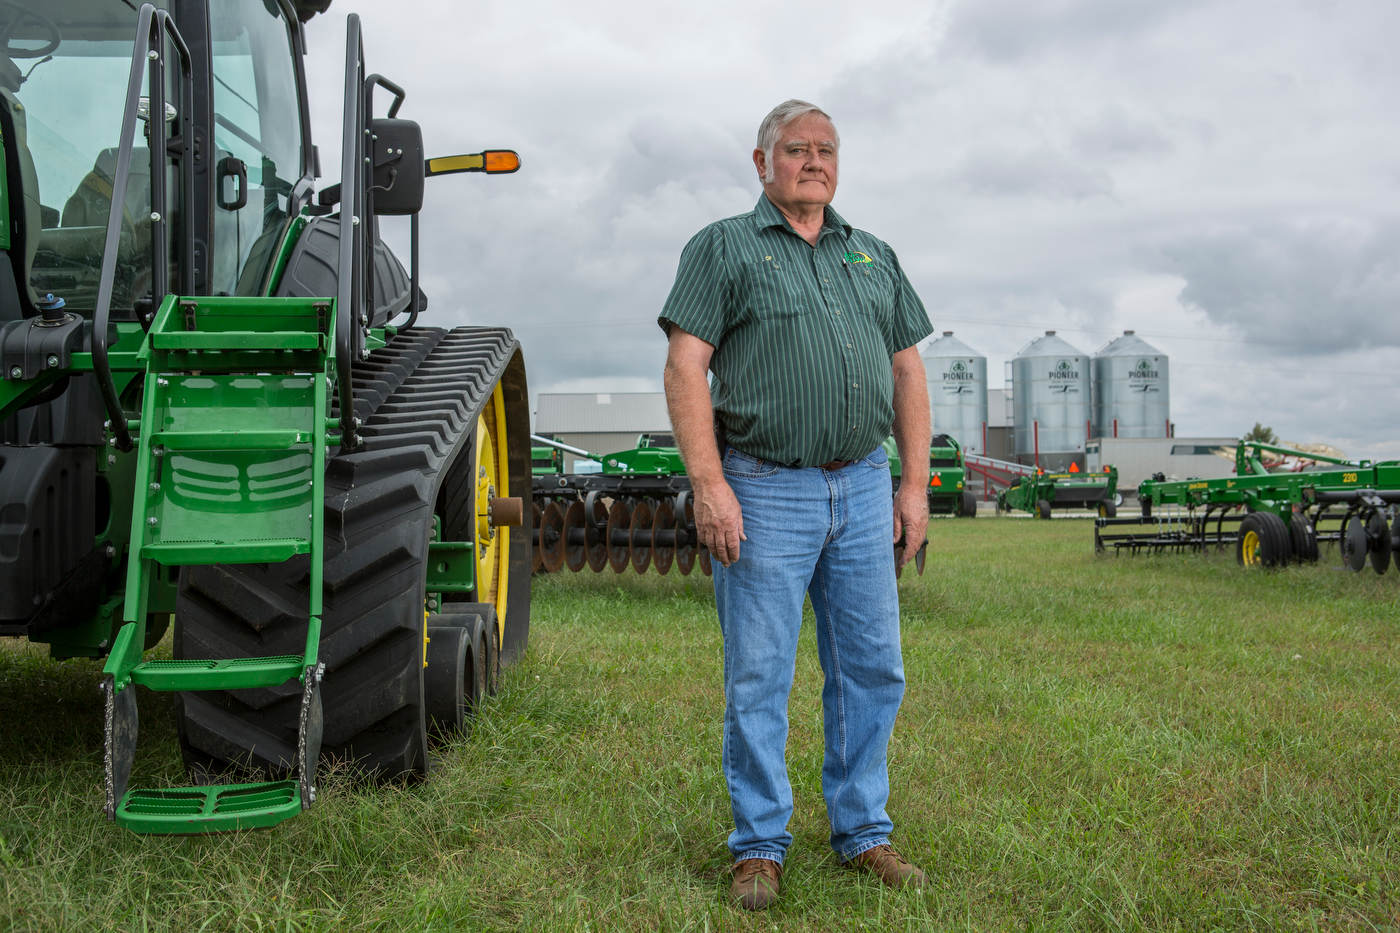 {quote}No one thought that Trump was gping to win the nomination. I support him because of the supreme court nomination{quote}, John Deere salesman, Missouri.